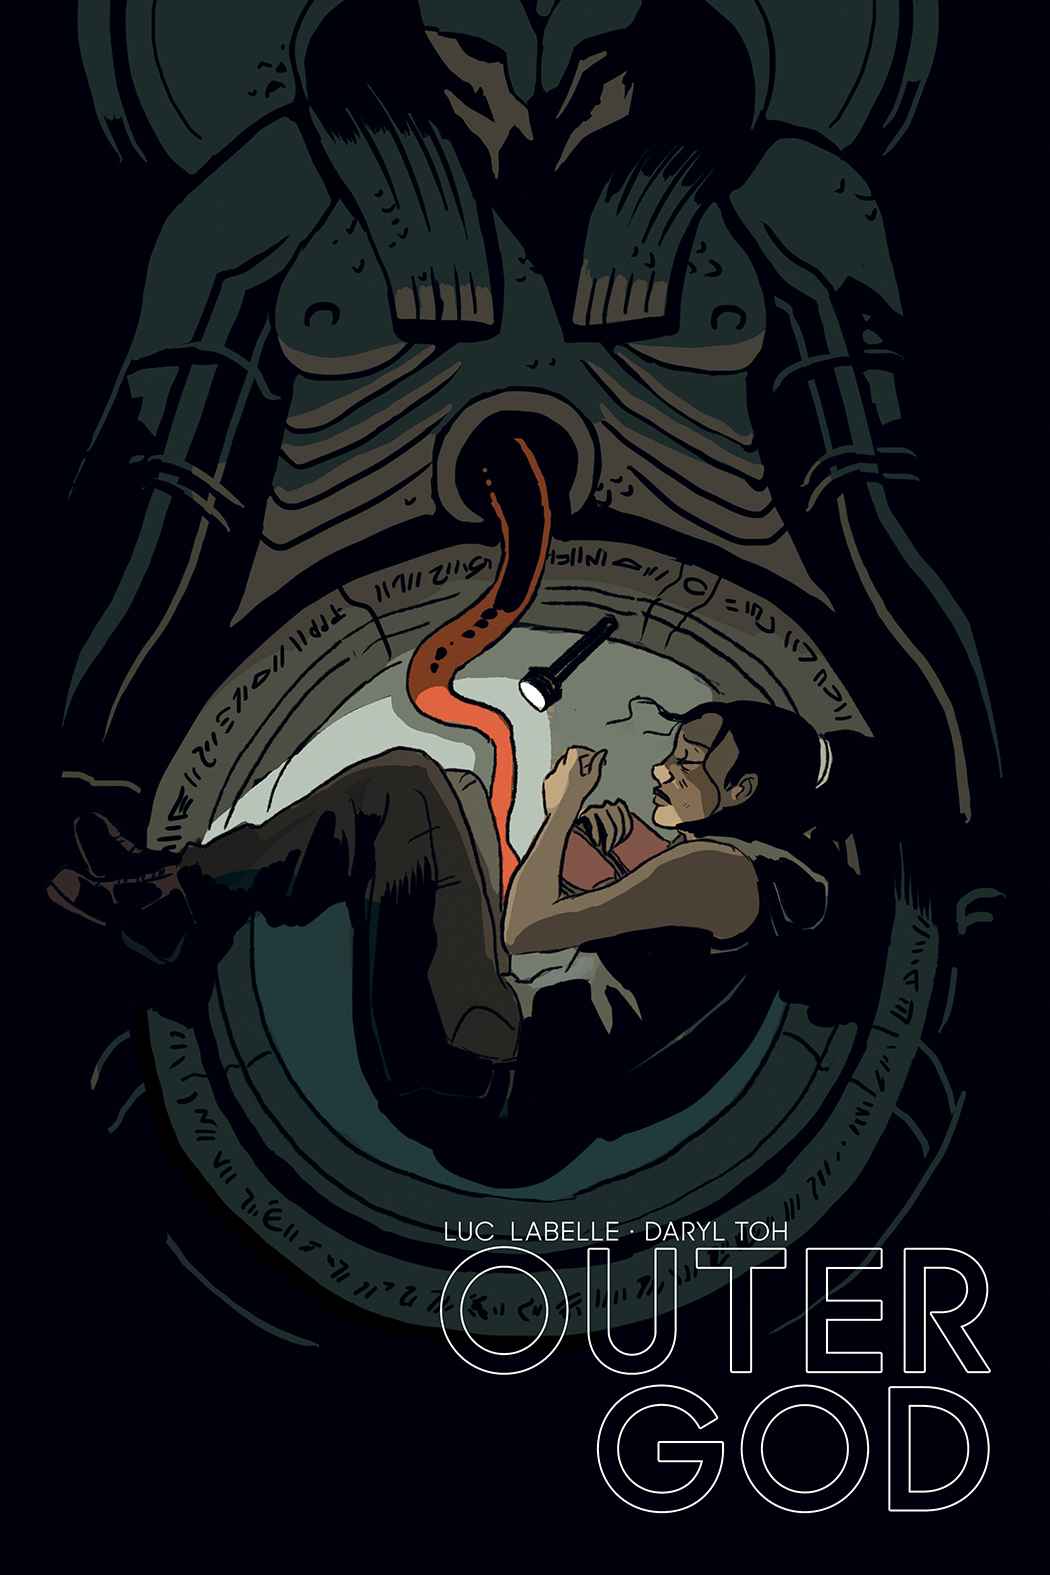 OUTER GOD (Luc Labelle, Daryl Toh)